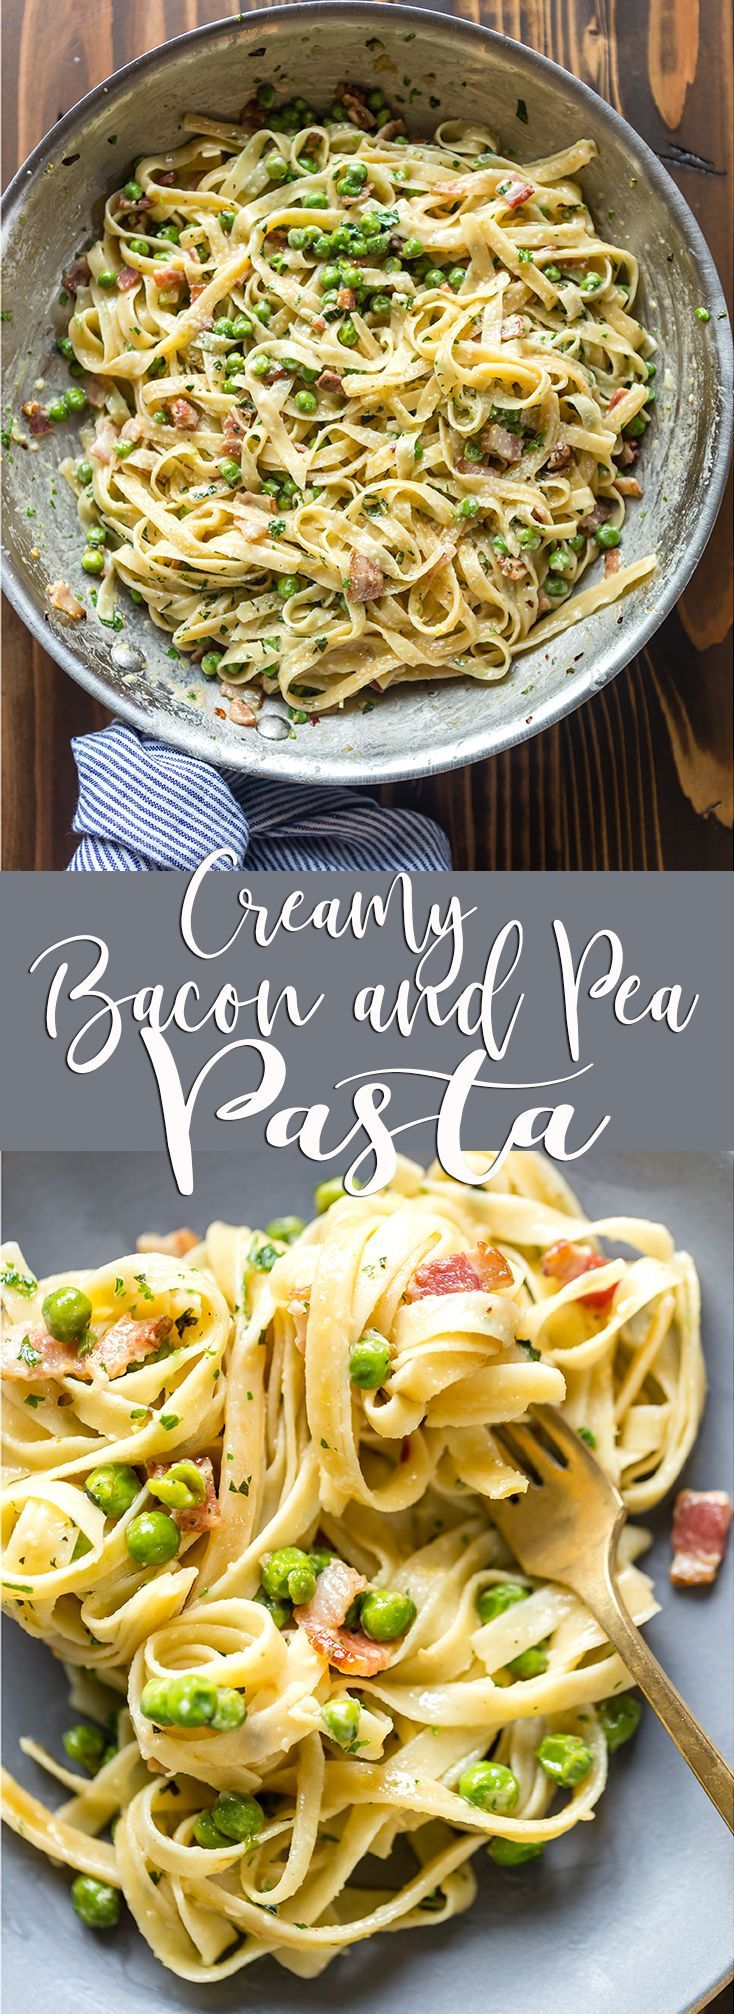 This quick Creamy Pasta with Pancetta and Peas only takes 15 minutes and is an easy and elegant dinner for any night of the week!